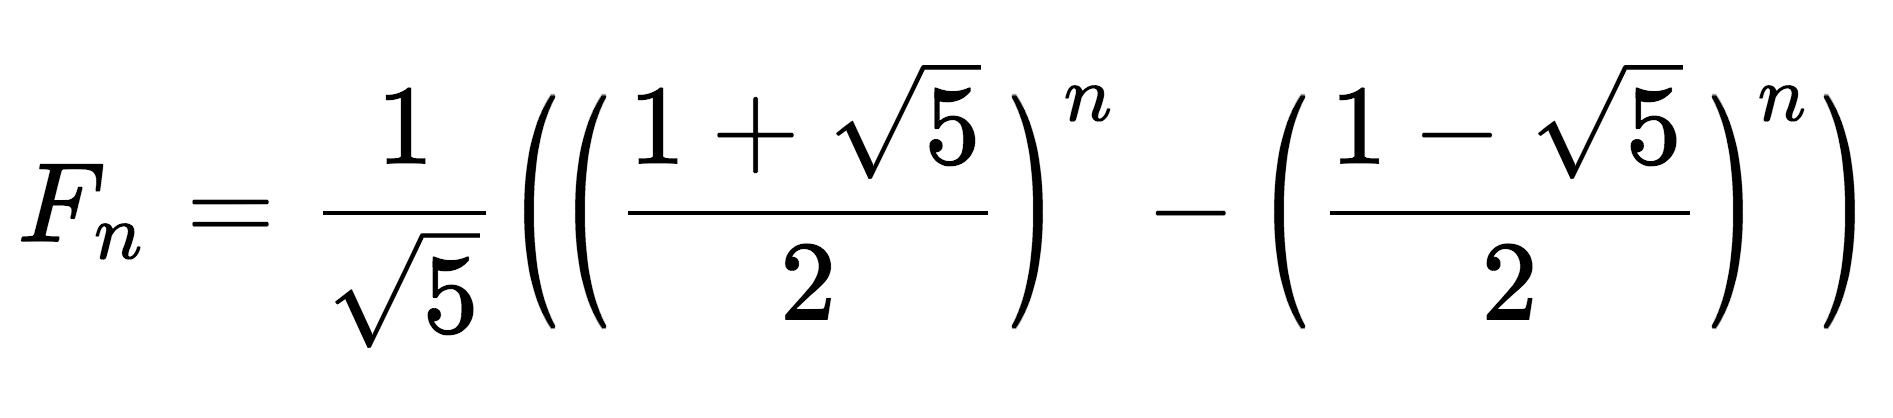 mathematical representation of Binet's formula, which is used to solve the nth term in the Fibonacci sequence